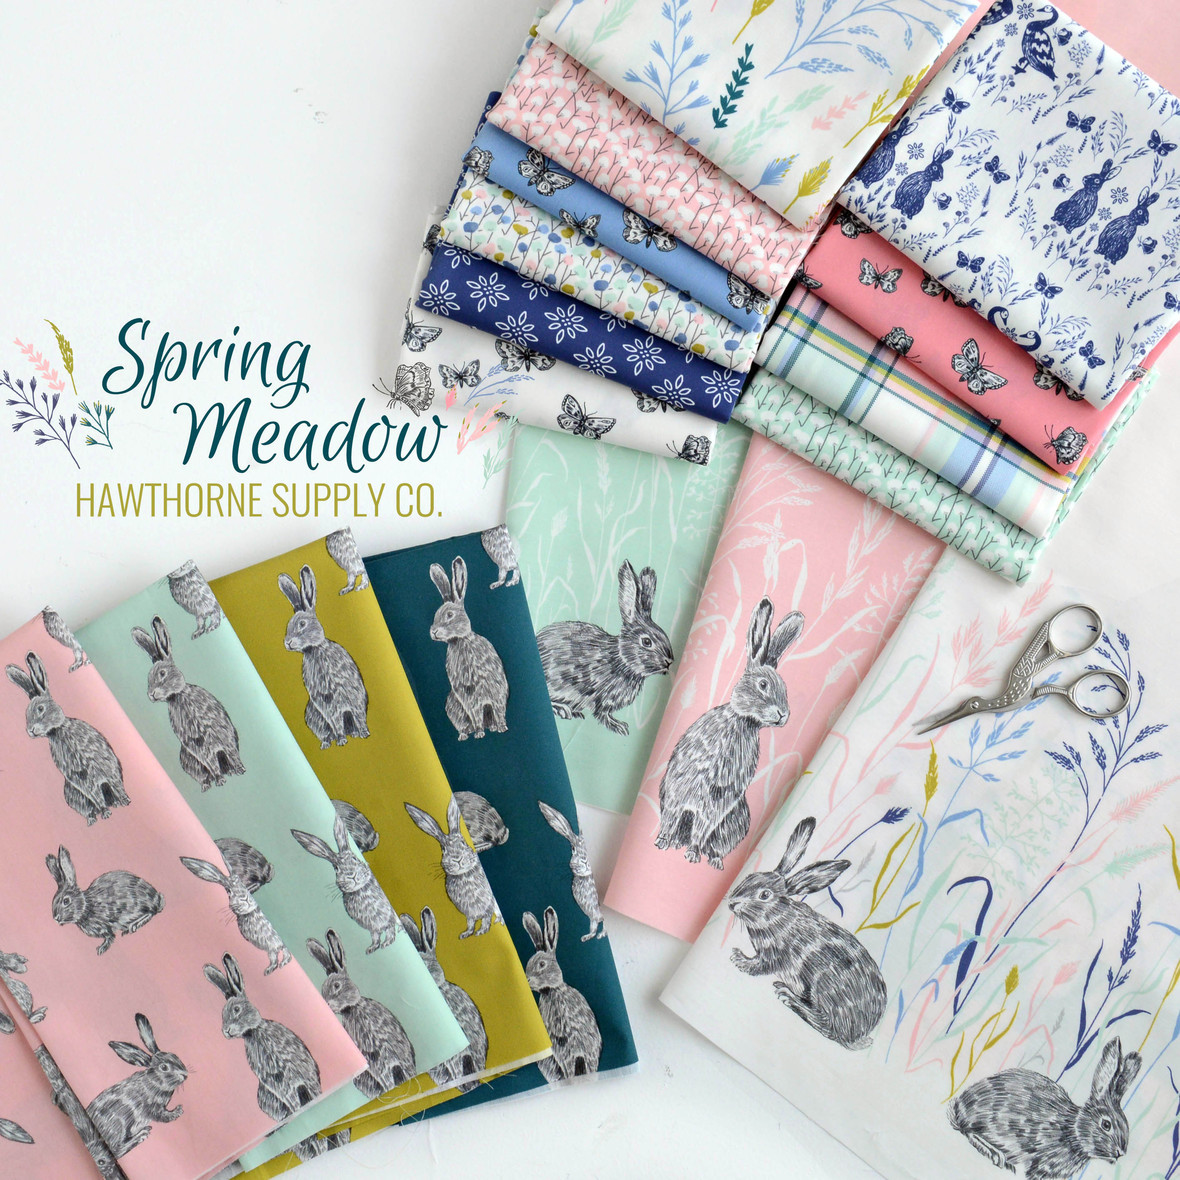 Spring Meadow Fabric Poster Hawthorne Supply Co